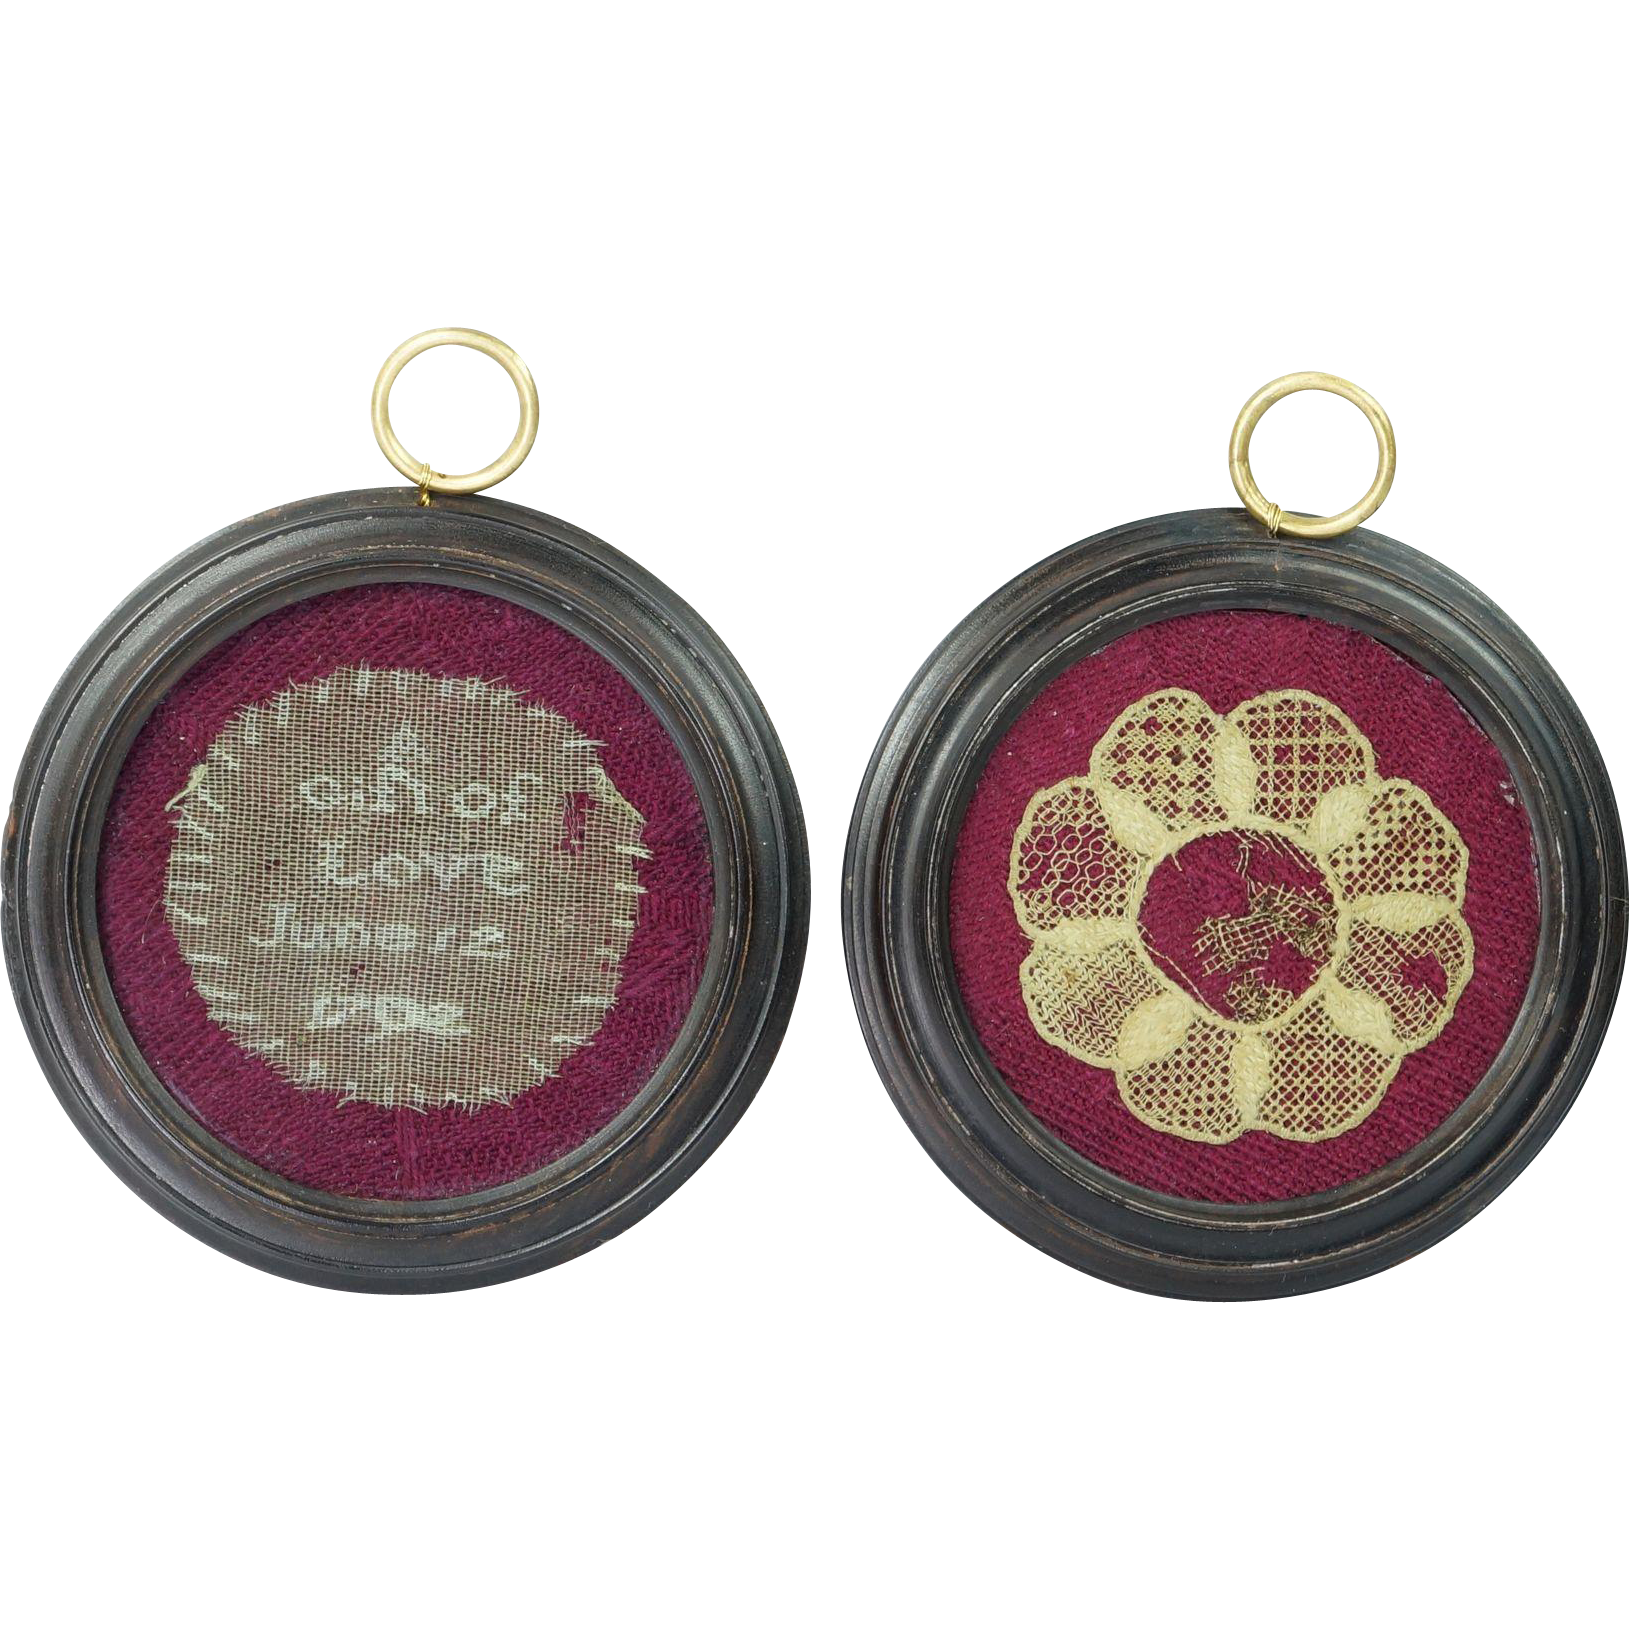 18th Century Pair Pocket Watch Sampler Needle Lace Love Tokens Dated 1792 Very Rare